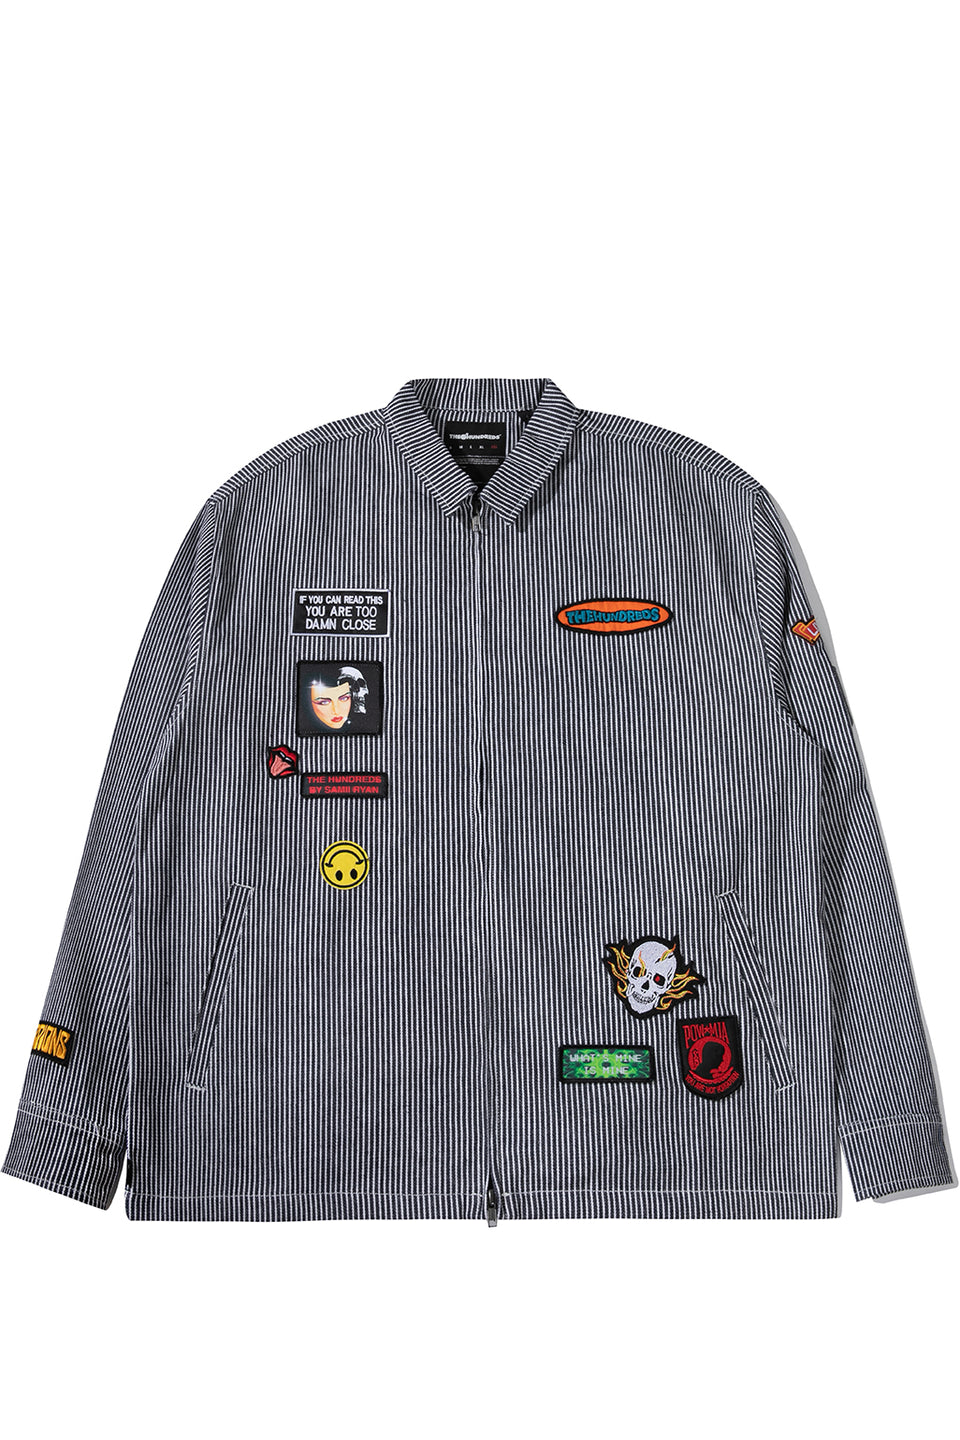 Samii Ryan Roosevelt Shirt Jacket